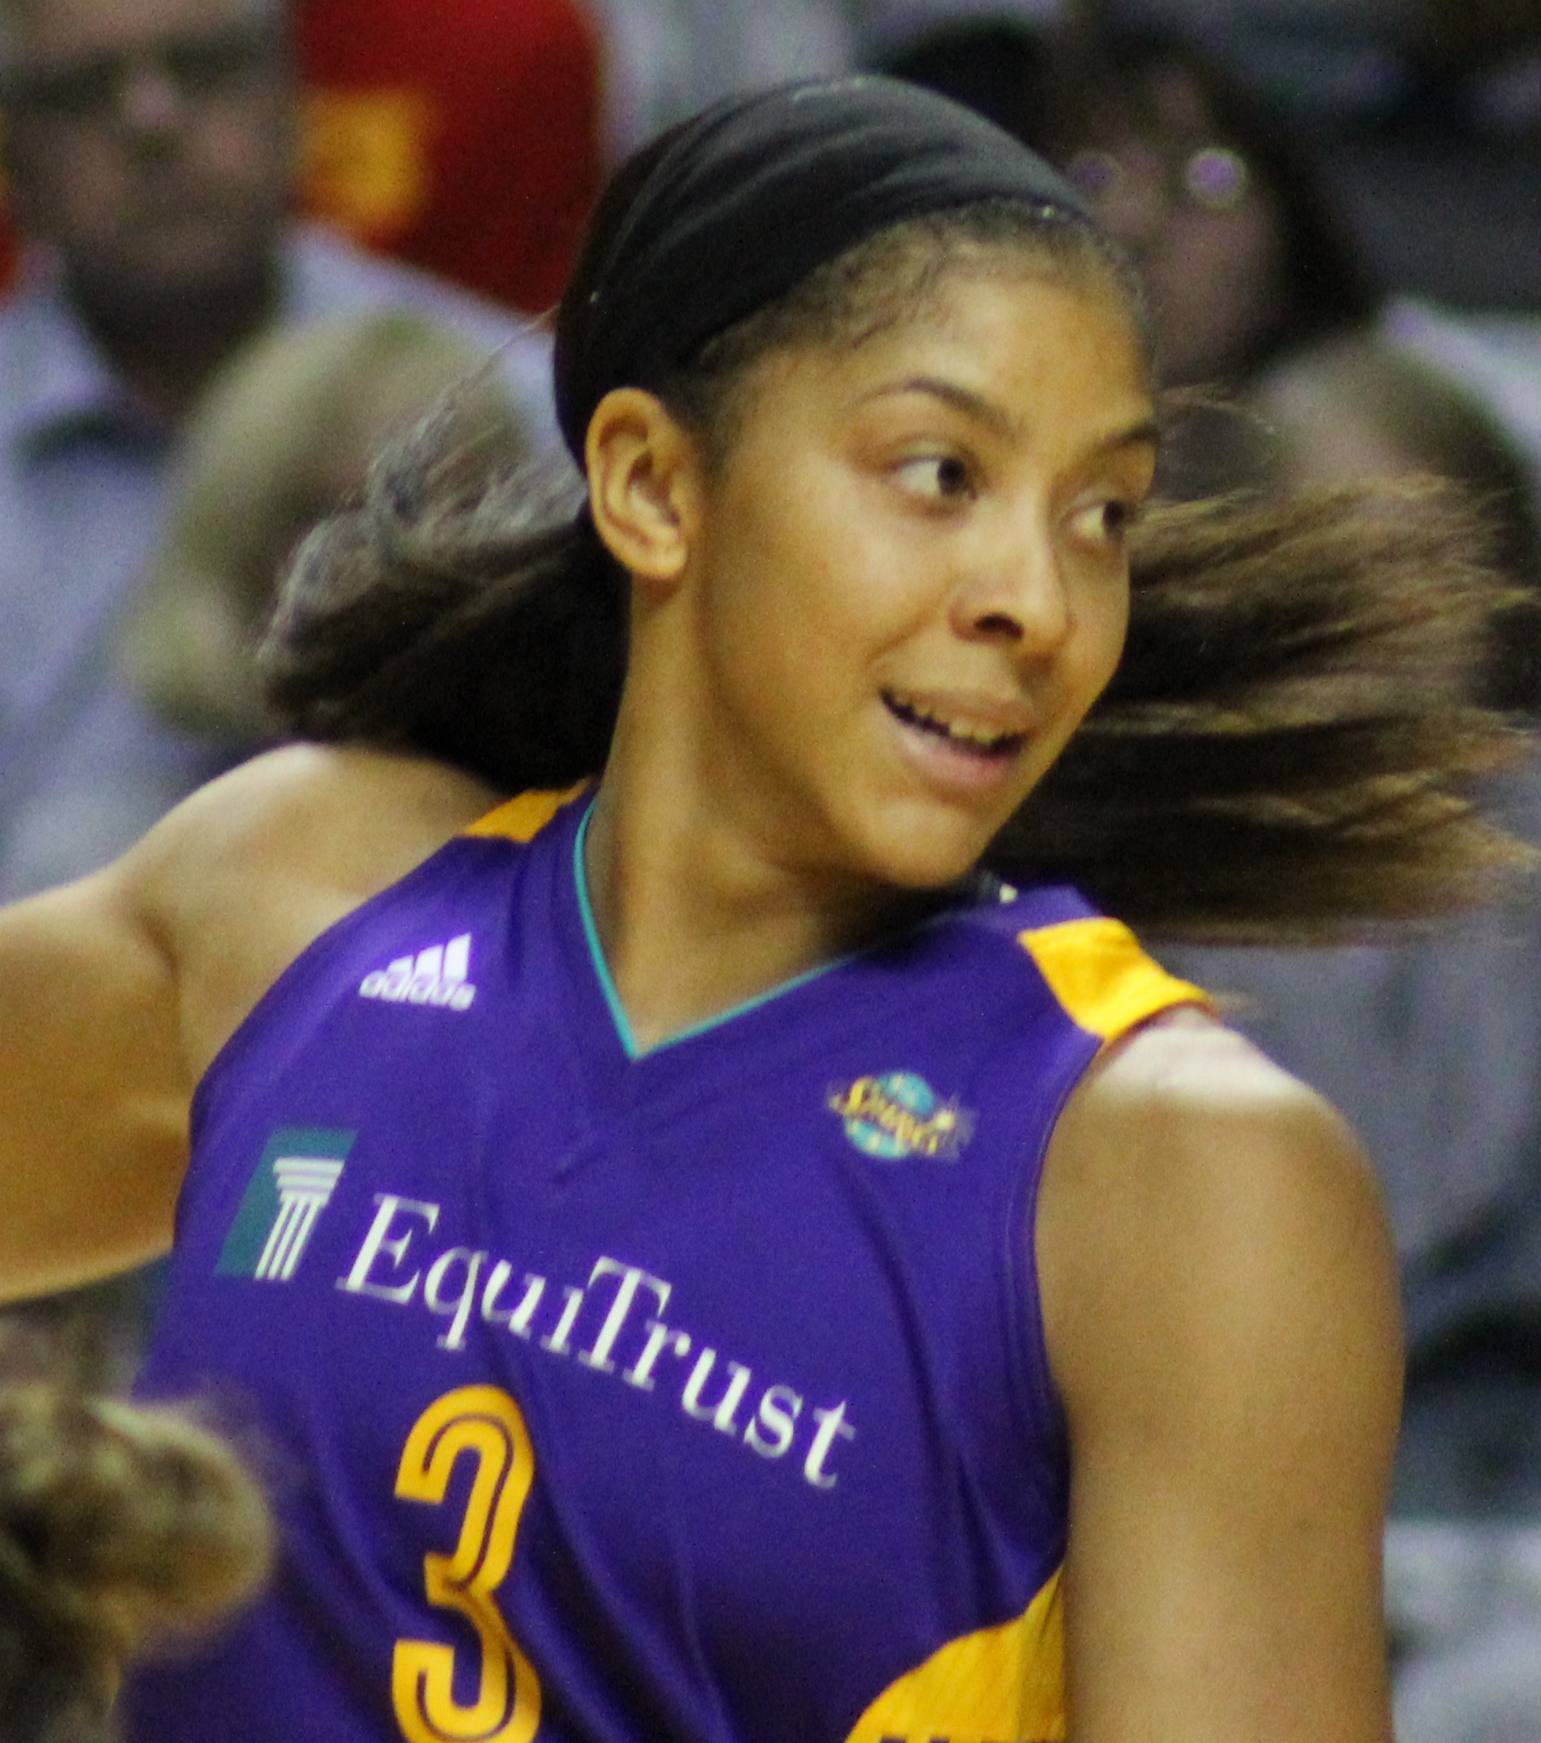 f4bd229ae0c3d7 Candace Parker - Wikipedia